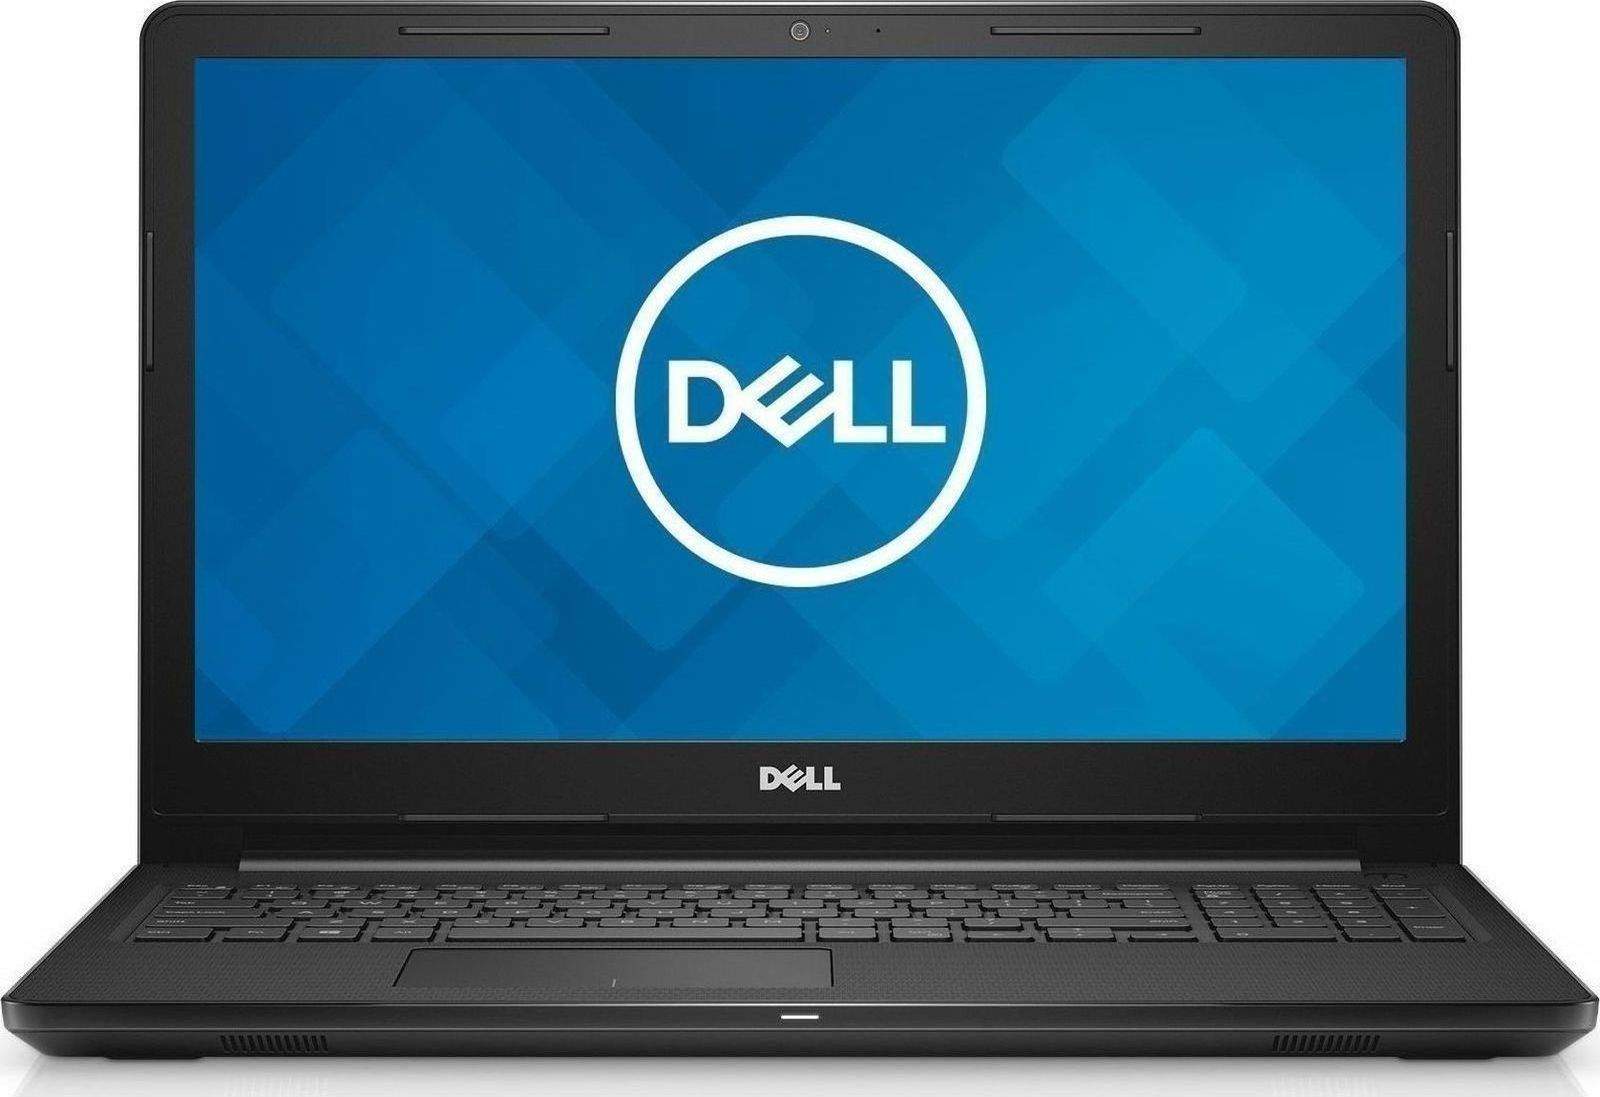 How to restore dell laptop to factory settings?